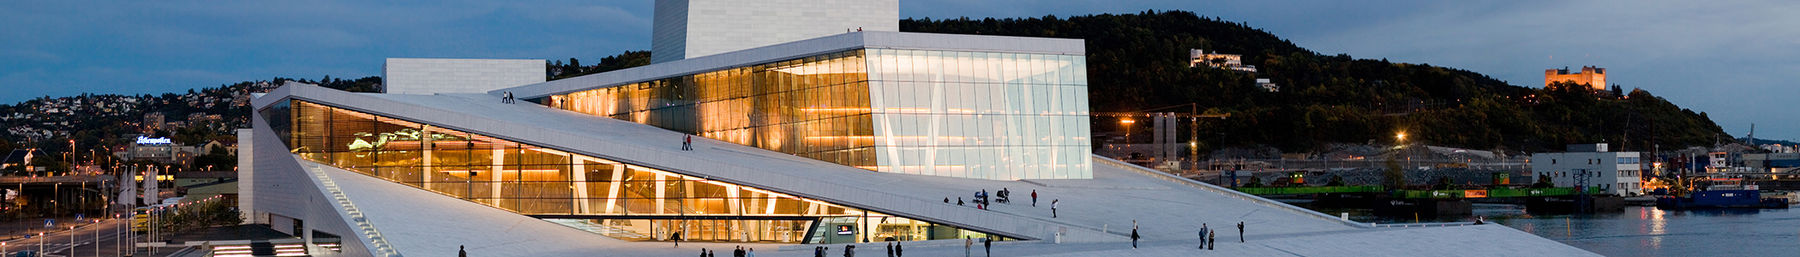 Oslo Opera by night